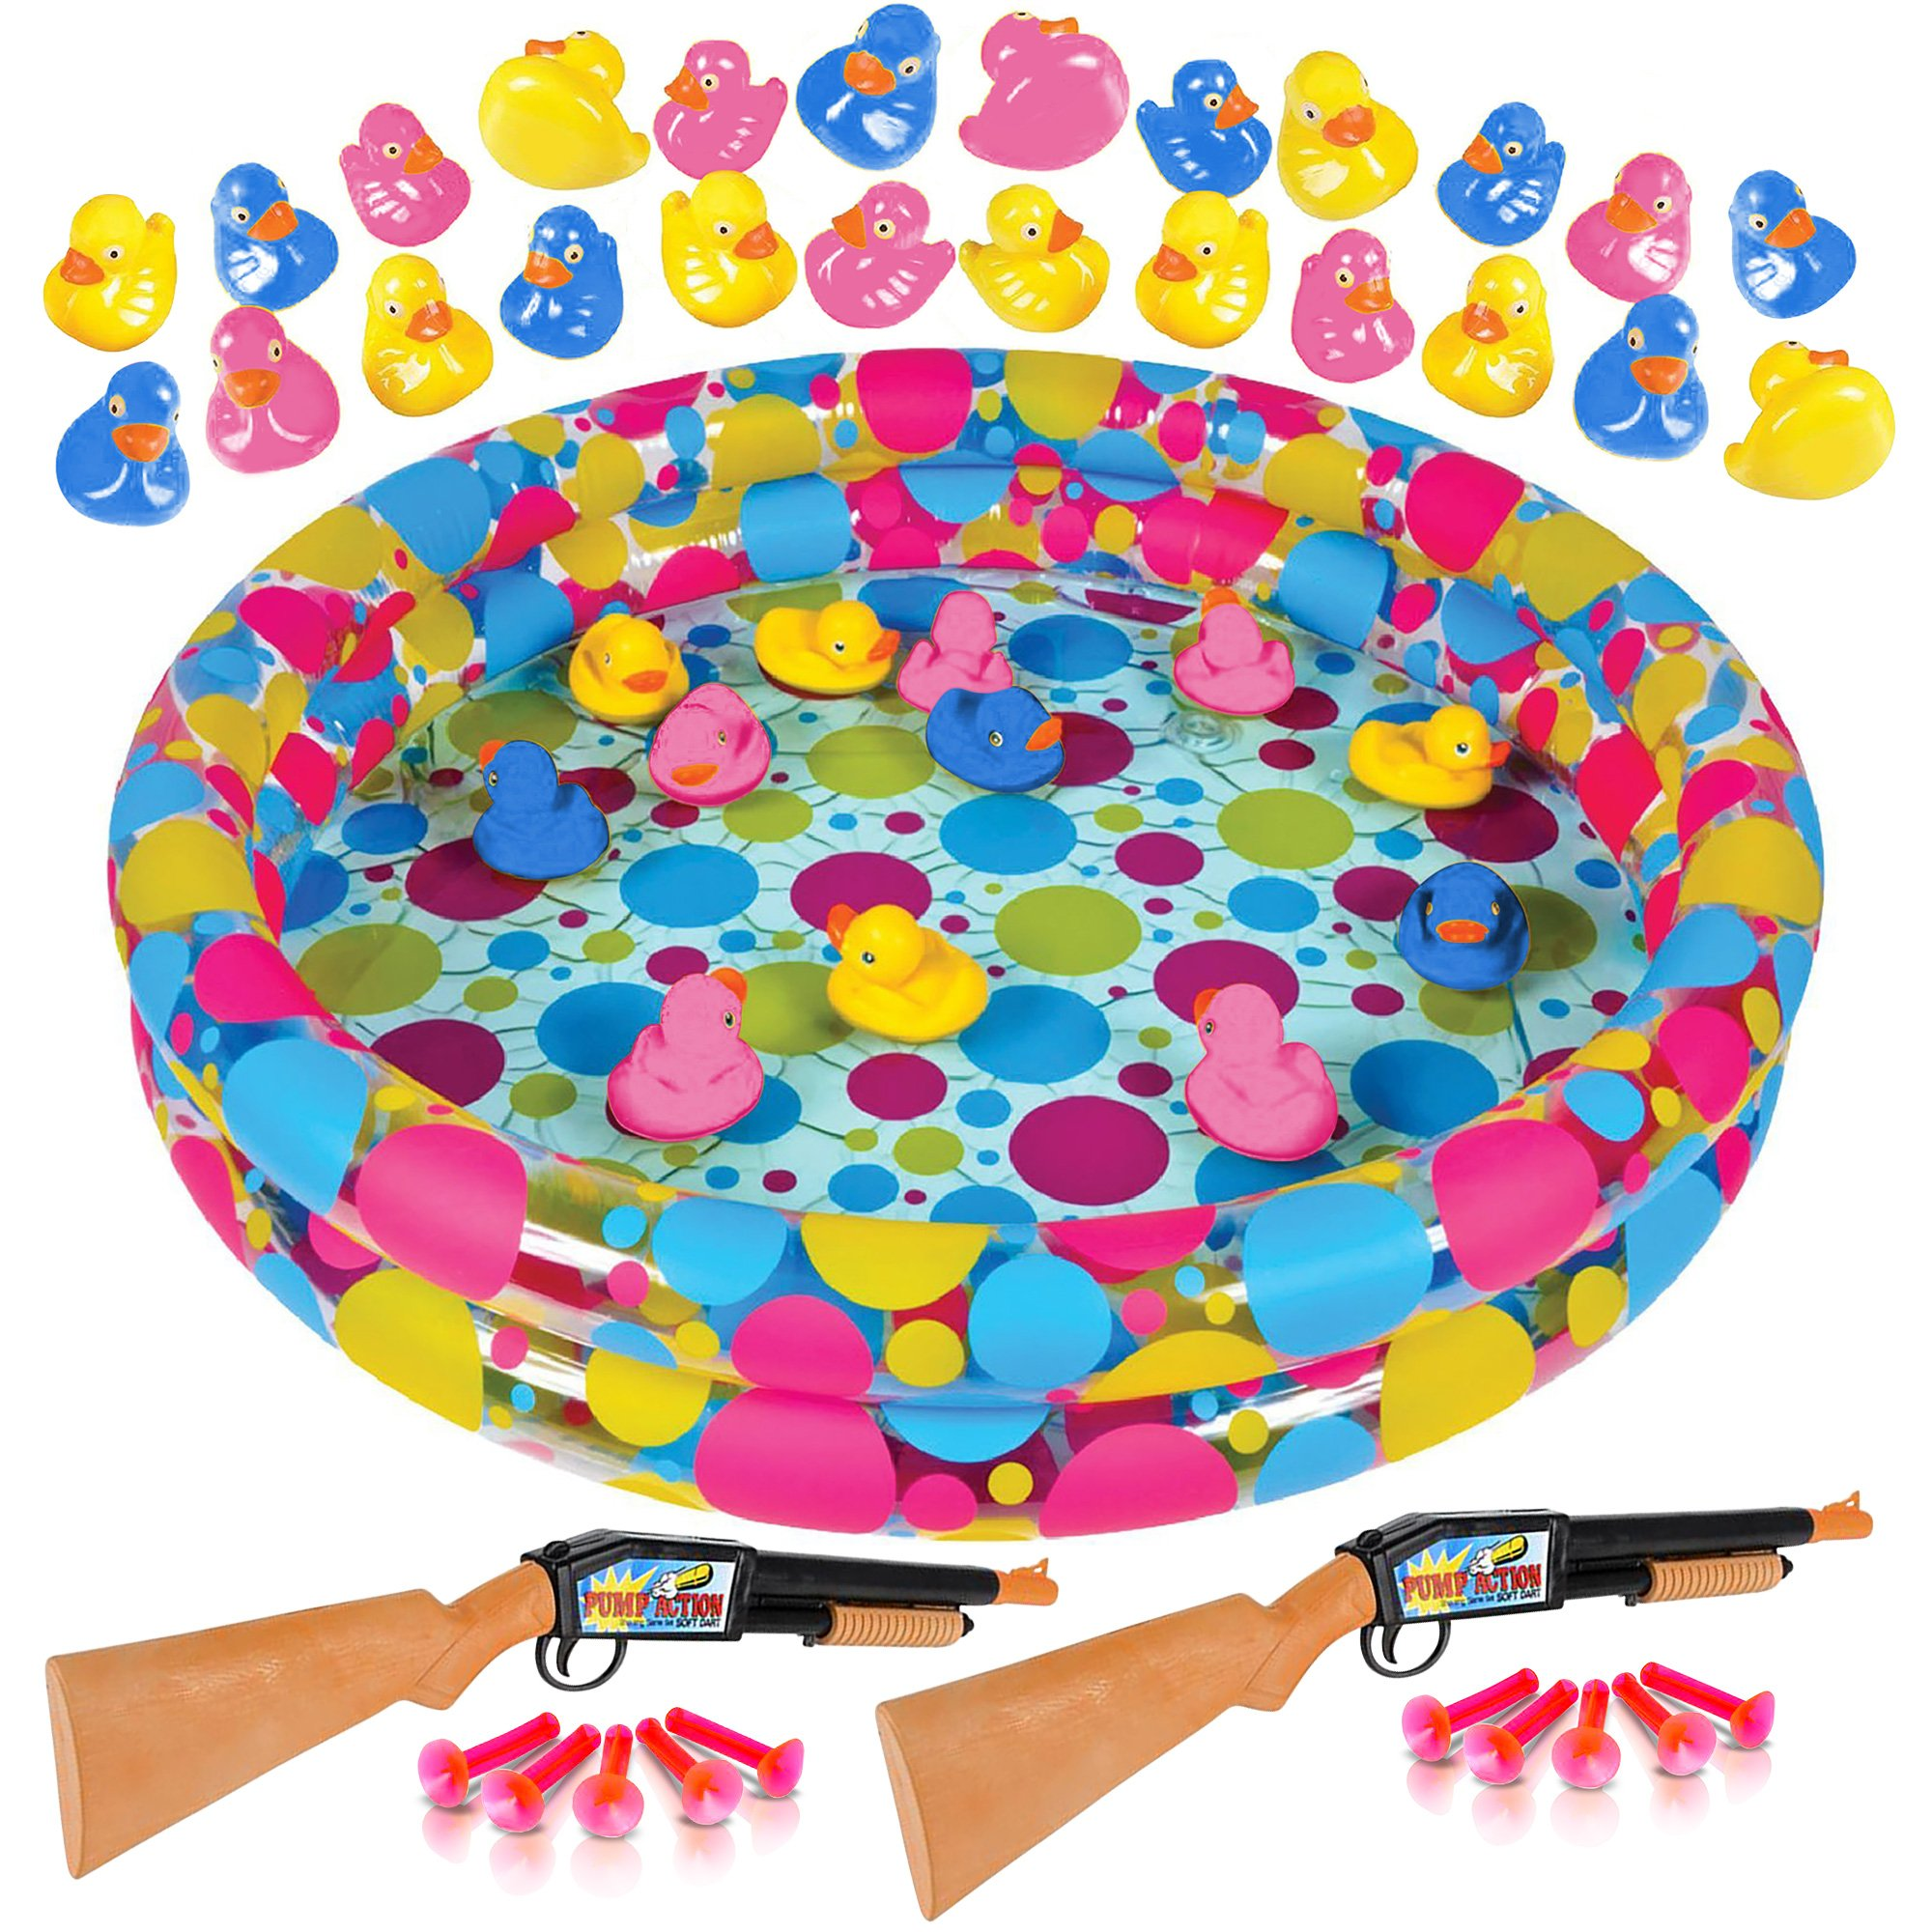 Gamie Duck 'em Down Shooting Game for Kids (43-Piece Set) | Includes Inflatable Pool, 2 Dart Rifles, 10 Darts, & 30 Ducks | Super Fun Indoor/ Outdoor Water Game for Summer / Carnival | Boys - Girls